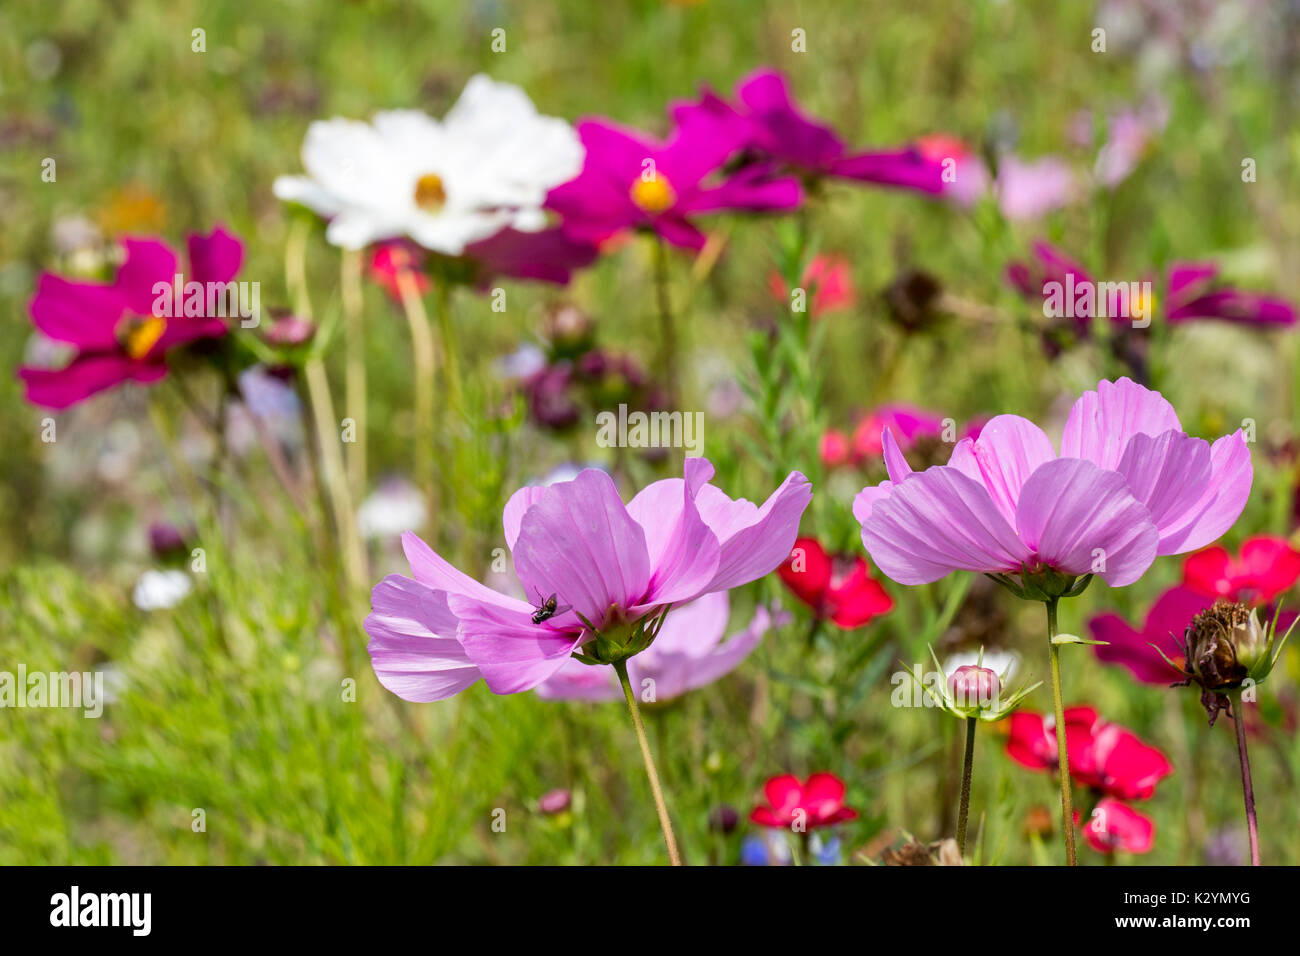 Mixture of colourful wildflowers in wildflower zone bordering grassland, planted to attract and help bees, butterflies and other pollinators - Stock Image